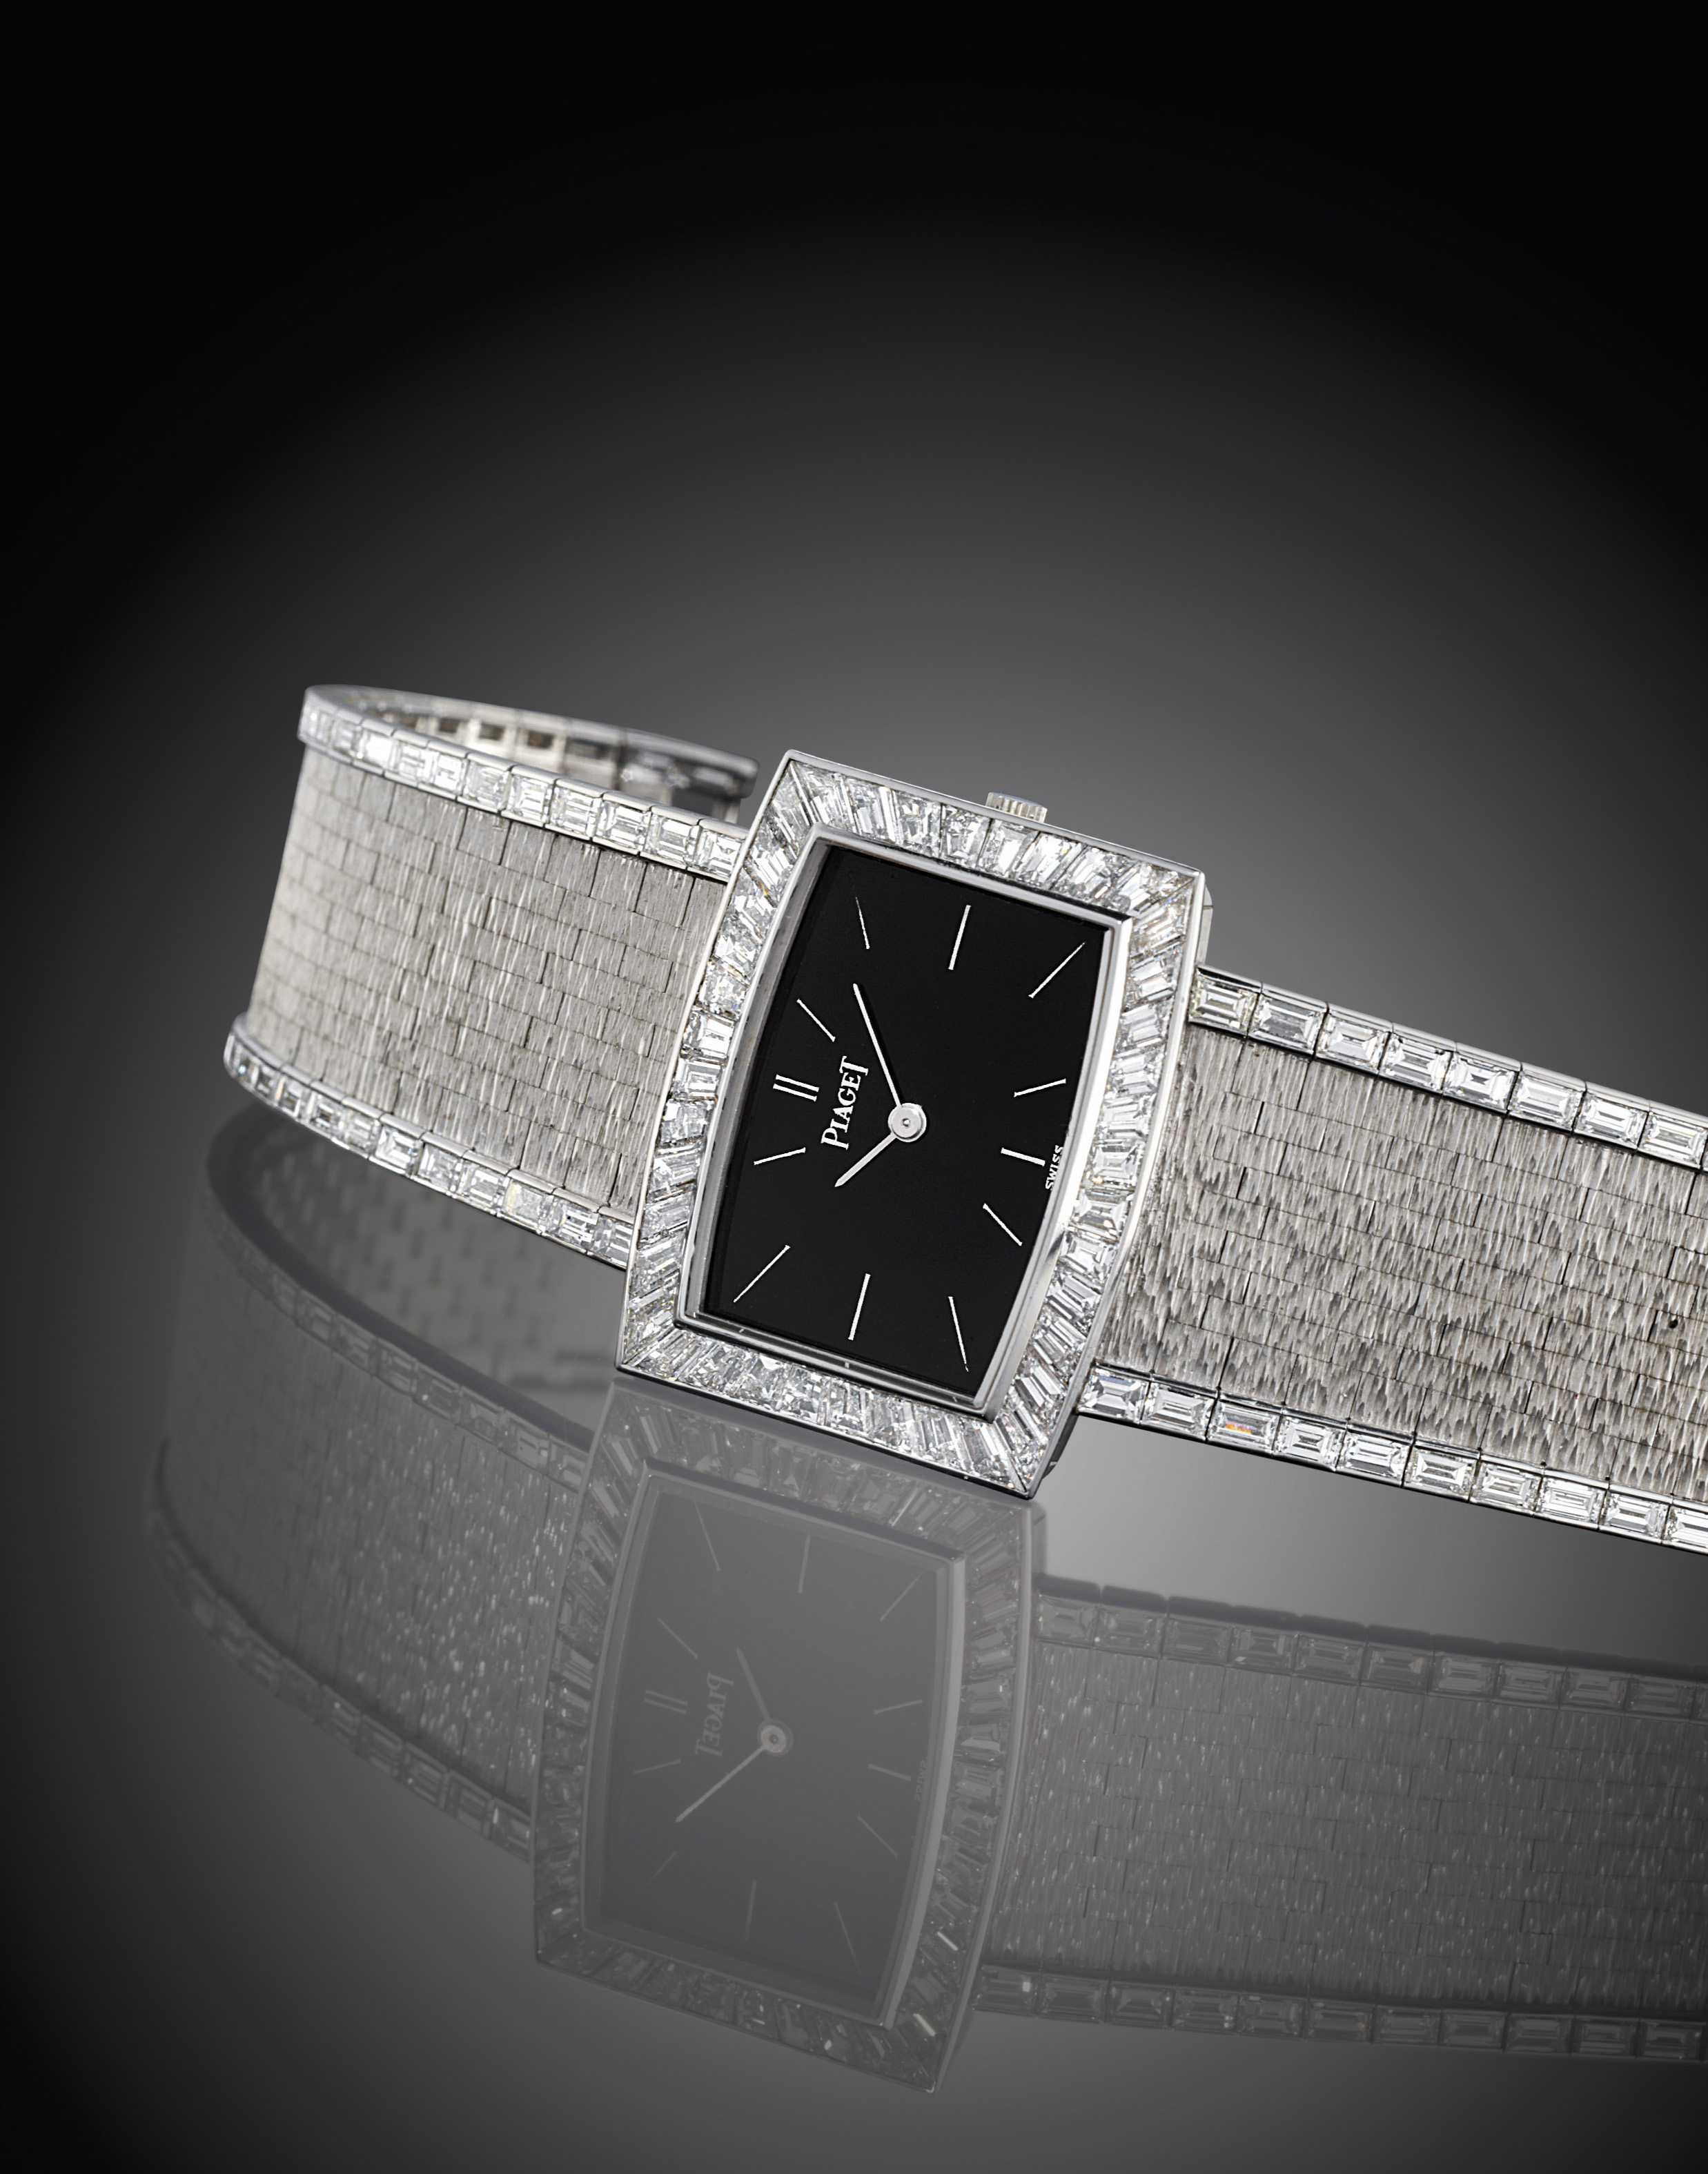 PIAGET. A FINE AND RARE 18K WH